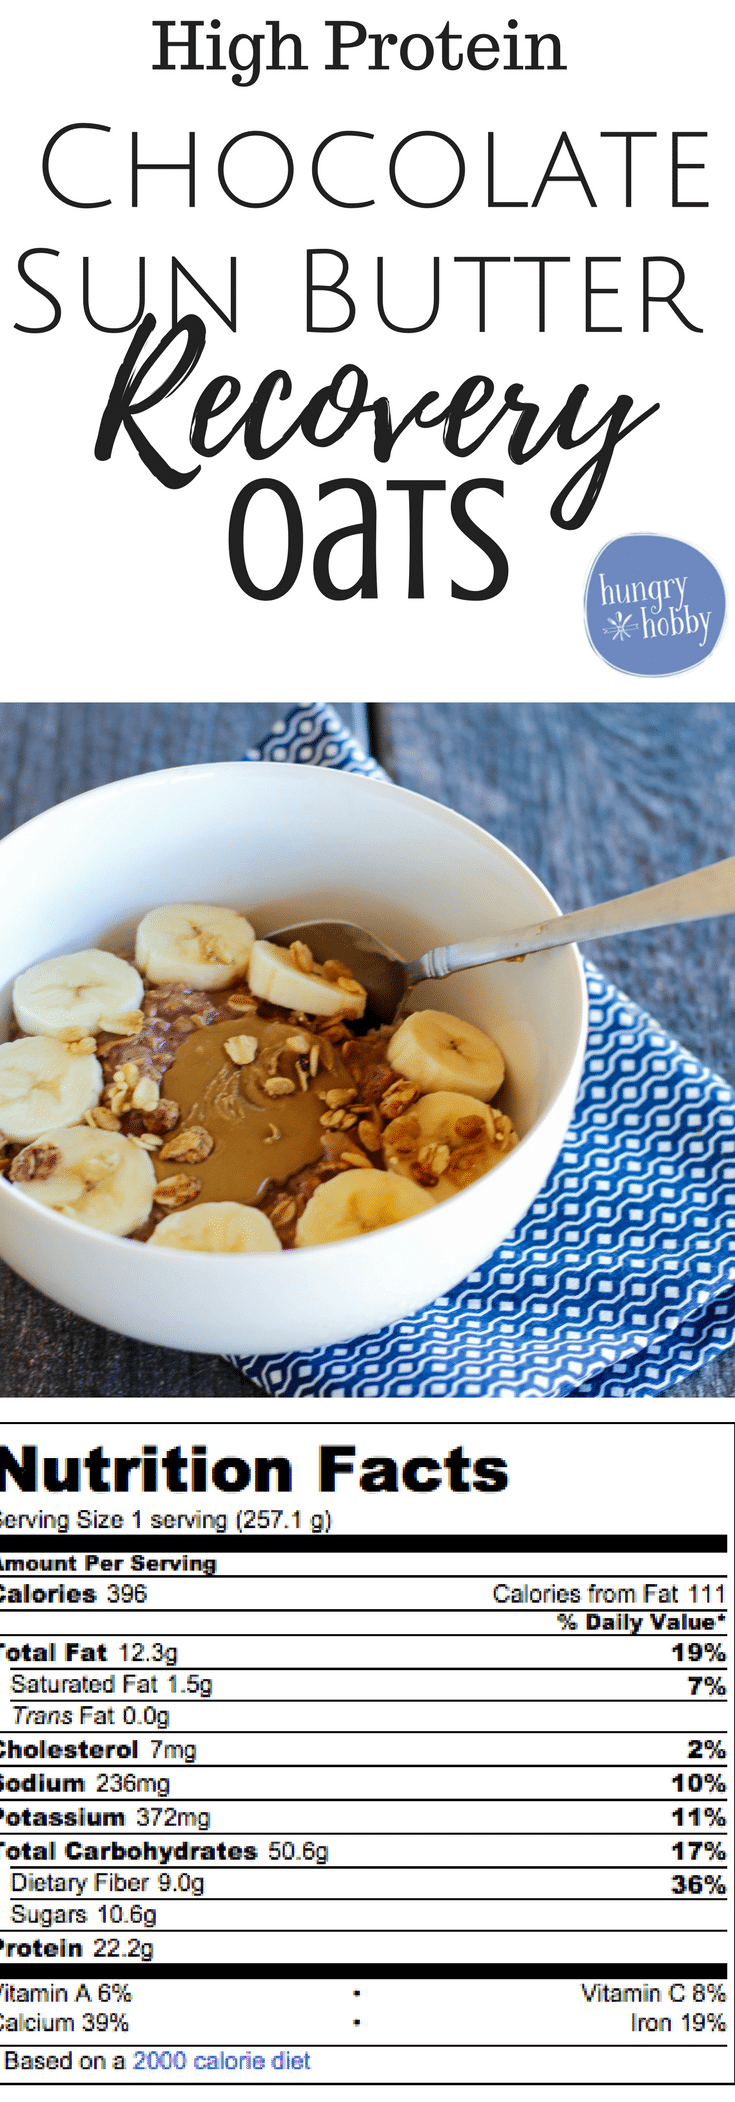 High Protein Oatmeal - Chocolate Sun Butter Oats are the perfect post run or post workout recovery oats.  Perfect 2:1 replenishment ratio!